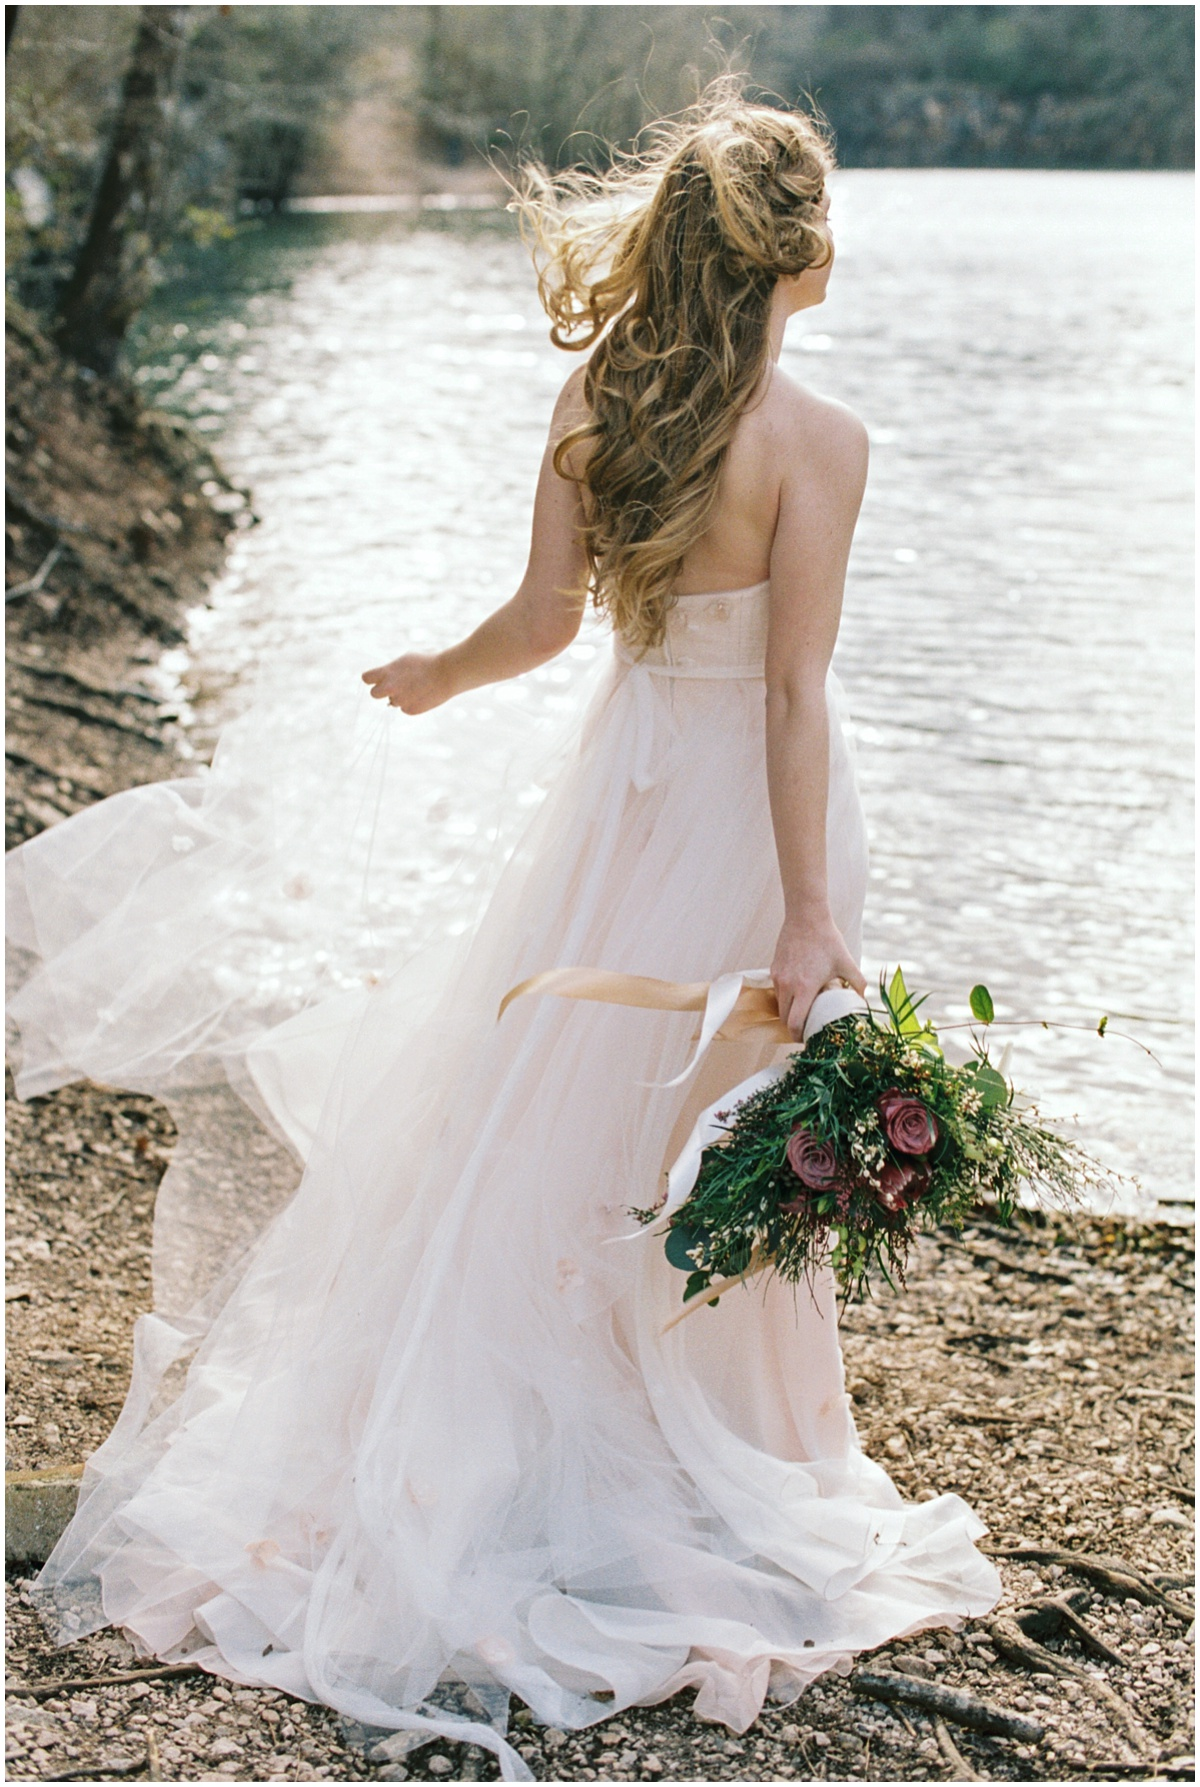 Abigail_Malone_Film_Wedding_Photography_KNoxville_TN_Blush_Dress_Outdoor_Windy_Pink_and_Green_Wedding_0041.jpg